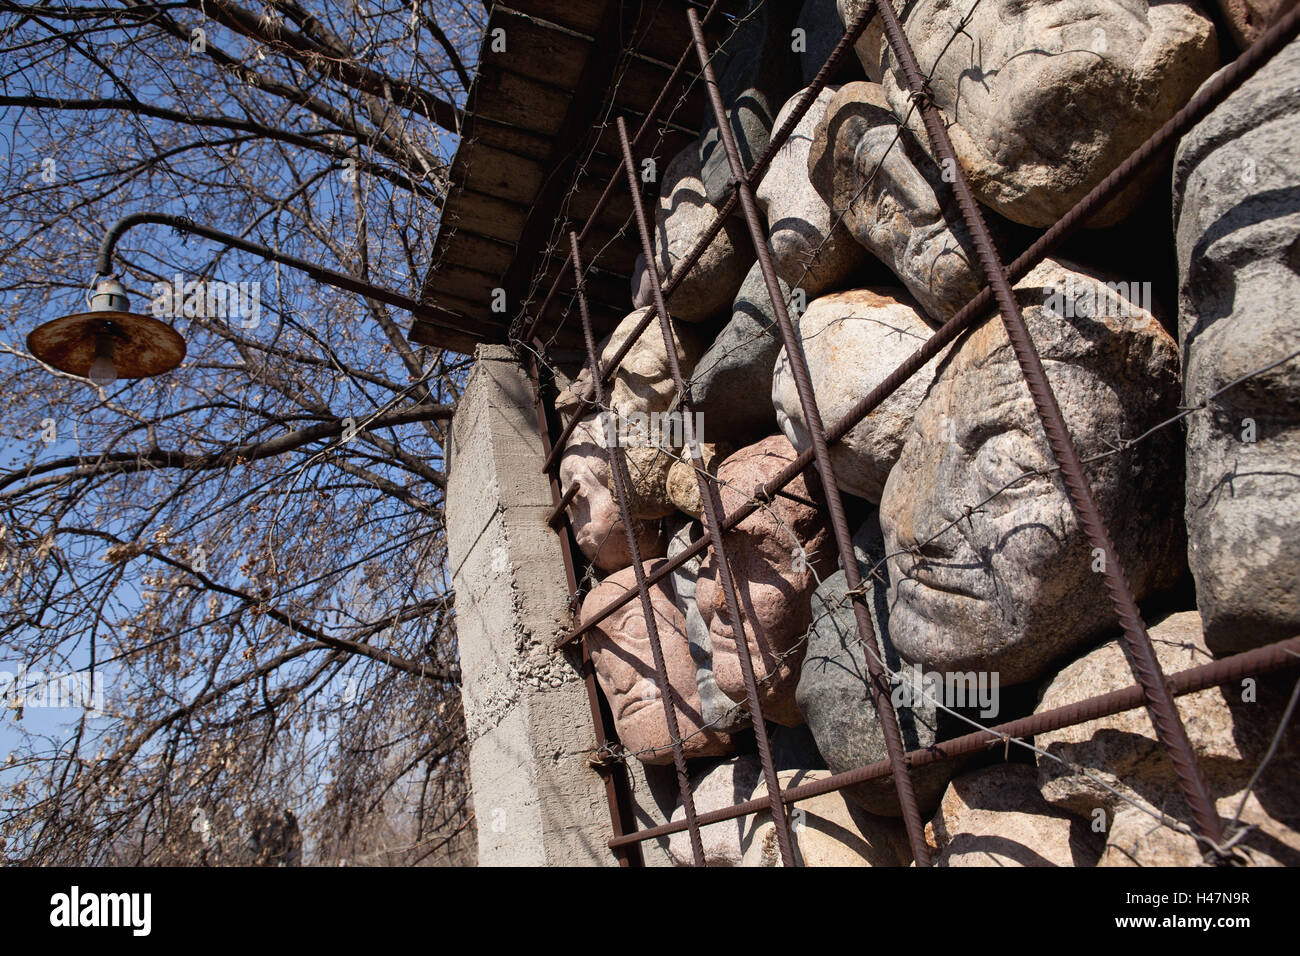 Moscow, sculpture park, memorial for the offerings the Stalinism, - Stock Image